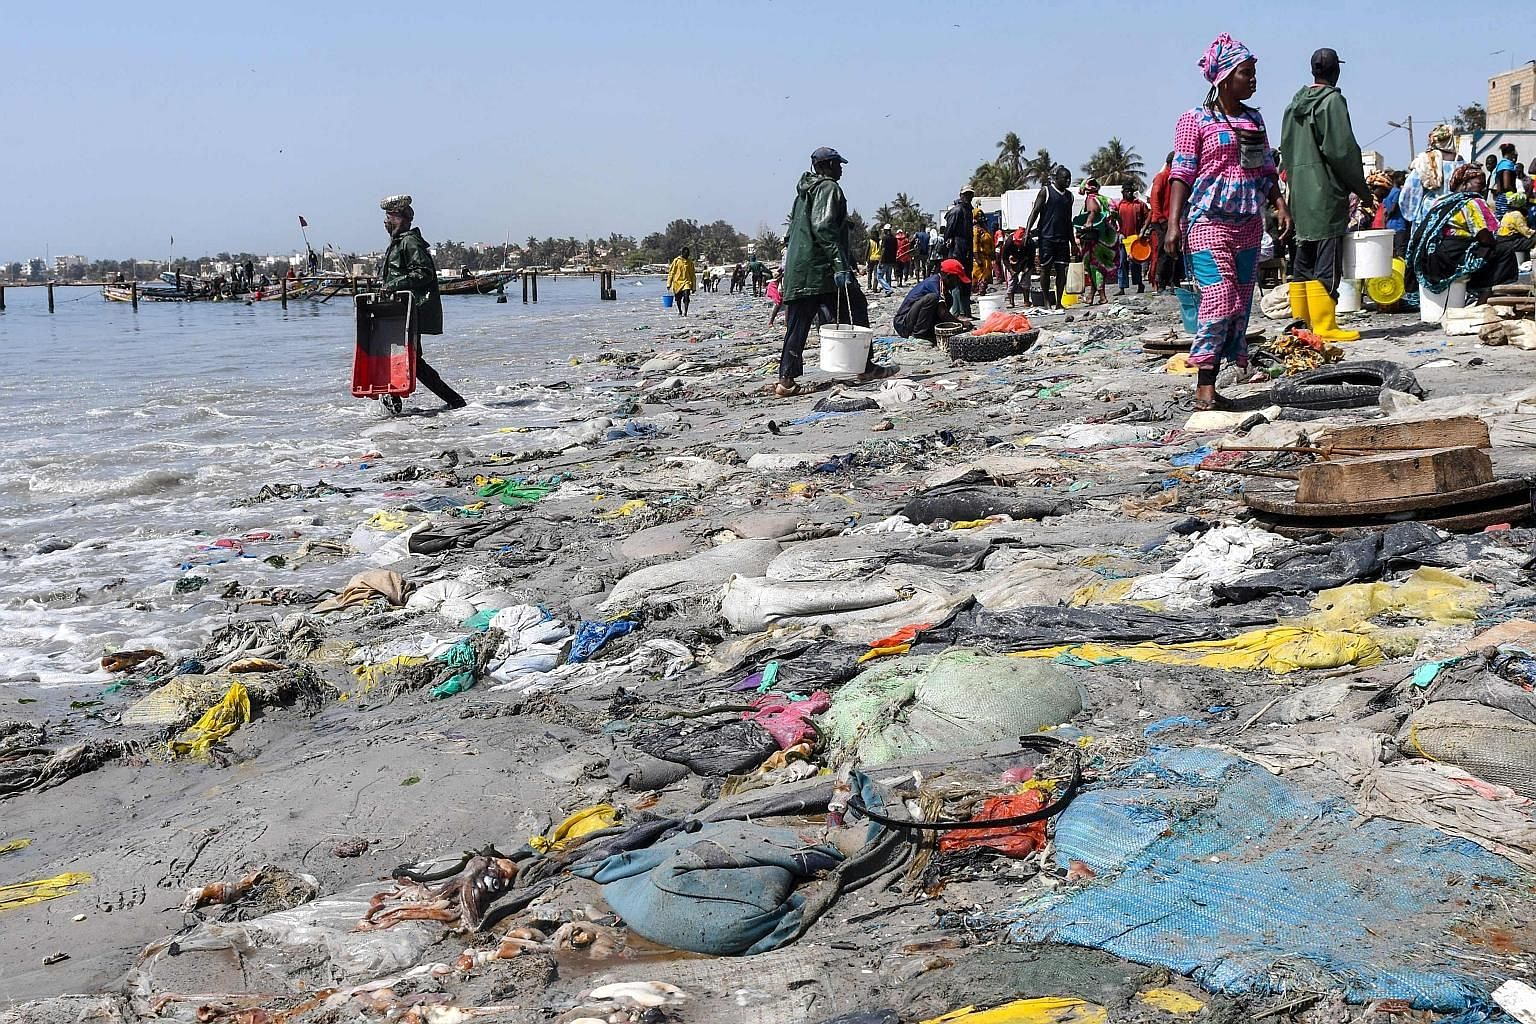 Tyre, plastic waste and dead fishes at Dakar's highly populated Hann Bay in Senegal. Under the agreement yesterday, G-20 member countries committed to reducing plastic waste that is choking the seas but gave little detail on how that would be done. T